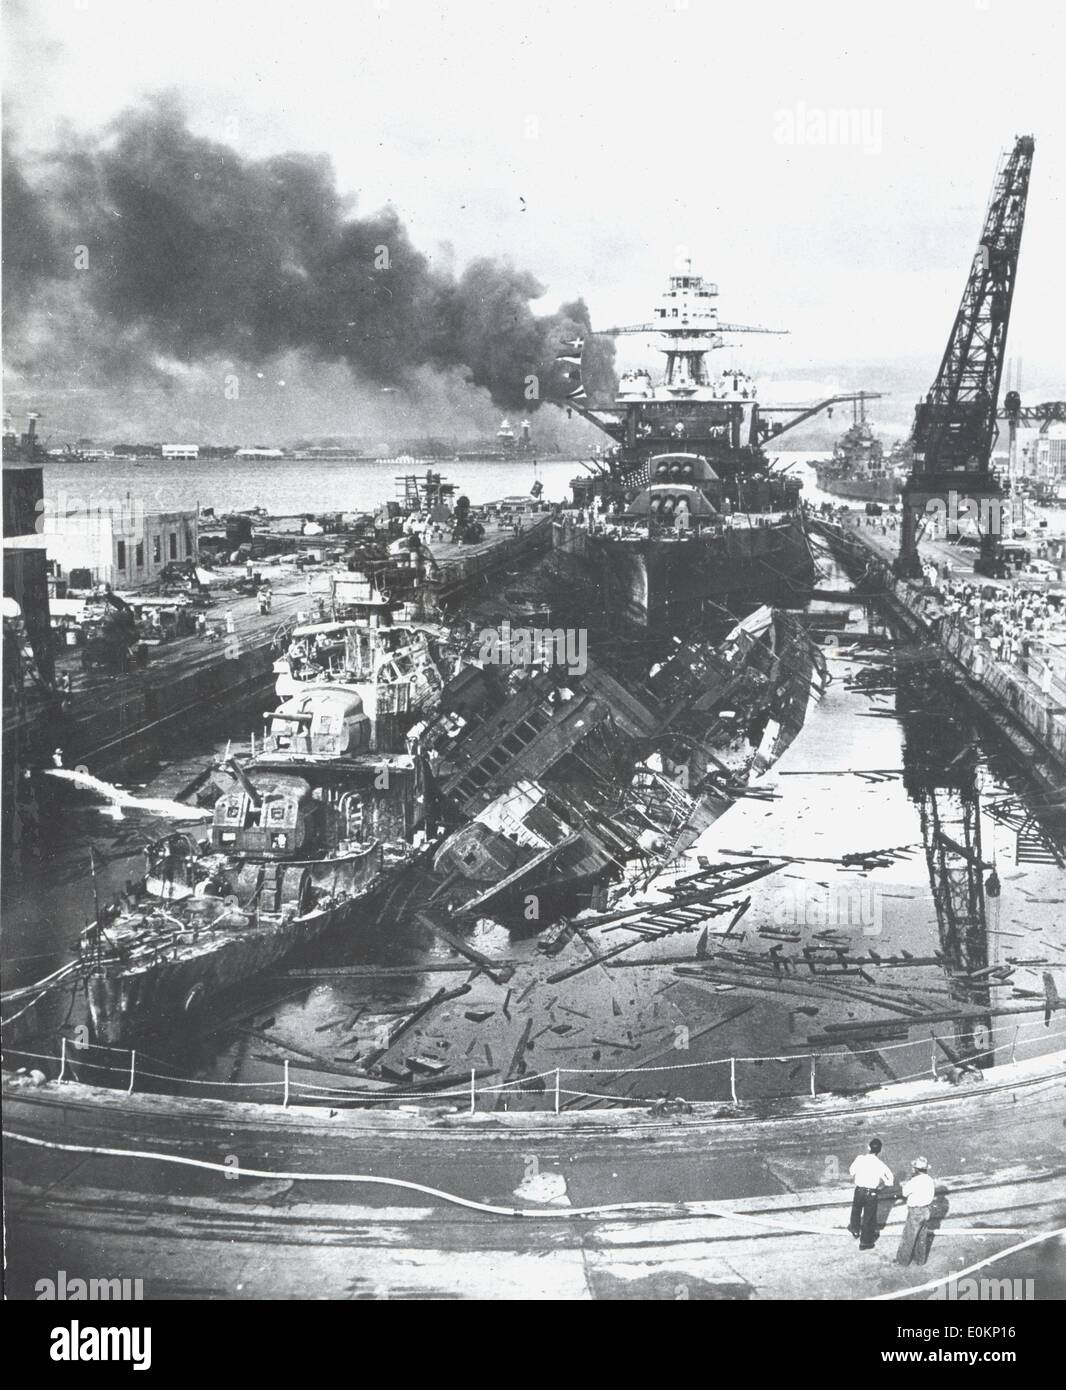 Aftermath of Attack on Pearl Harbor Stock Photo